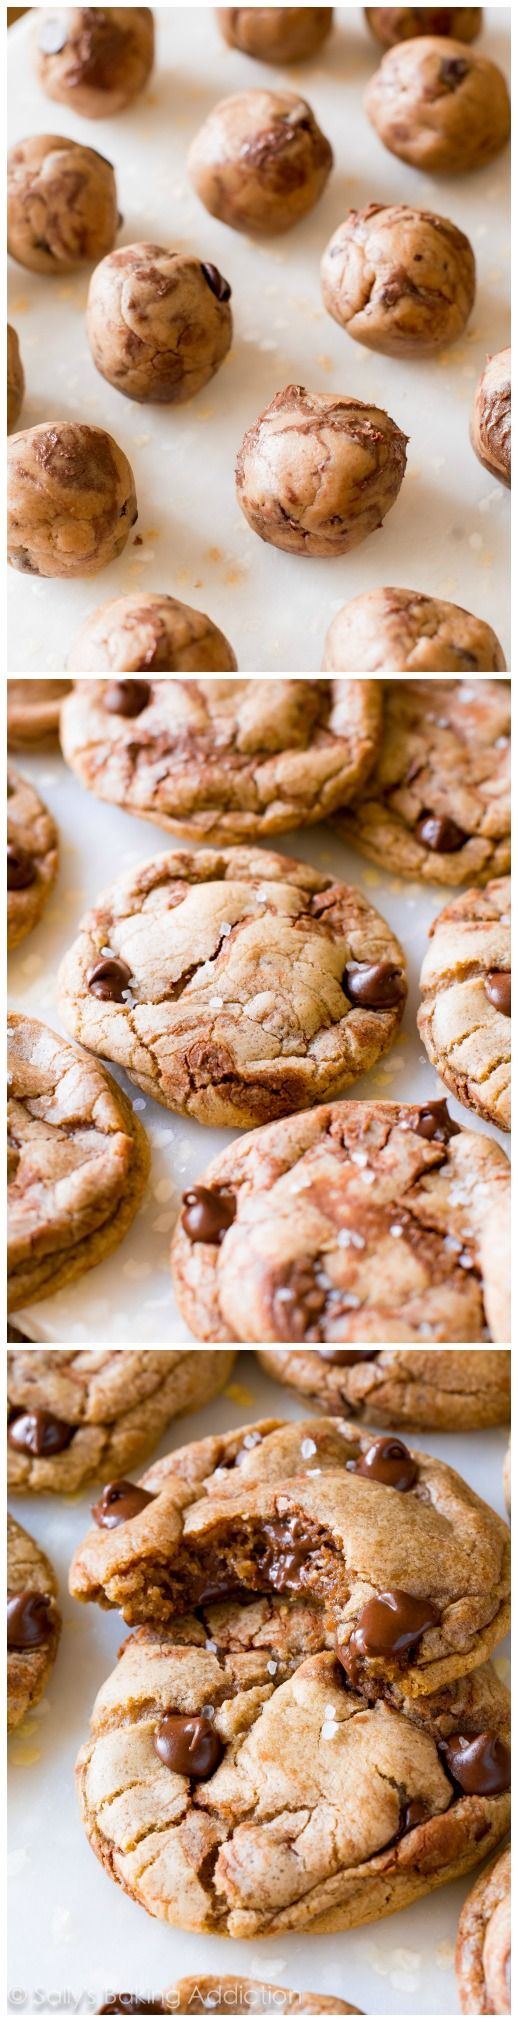 The only thing better than a chocolate chip cookie is a chocolate chip cookie with NUTELLA!